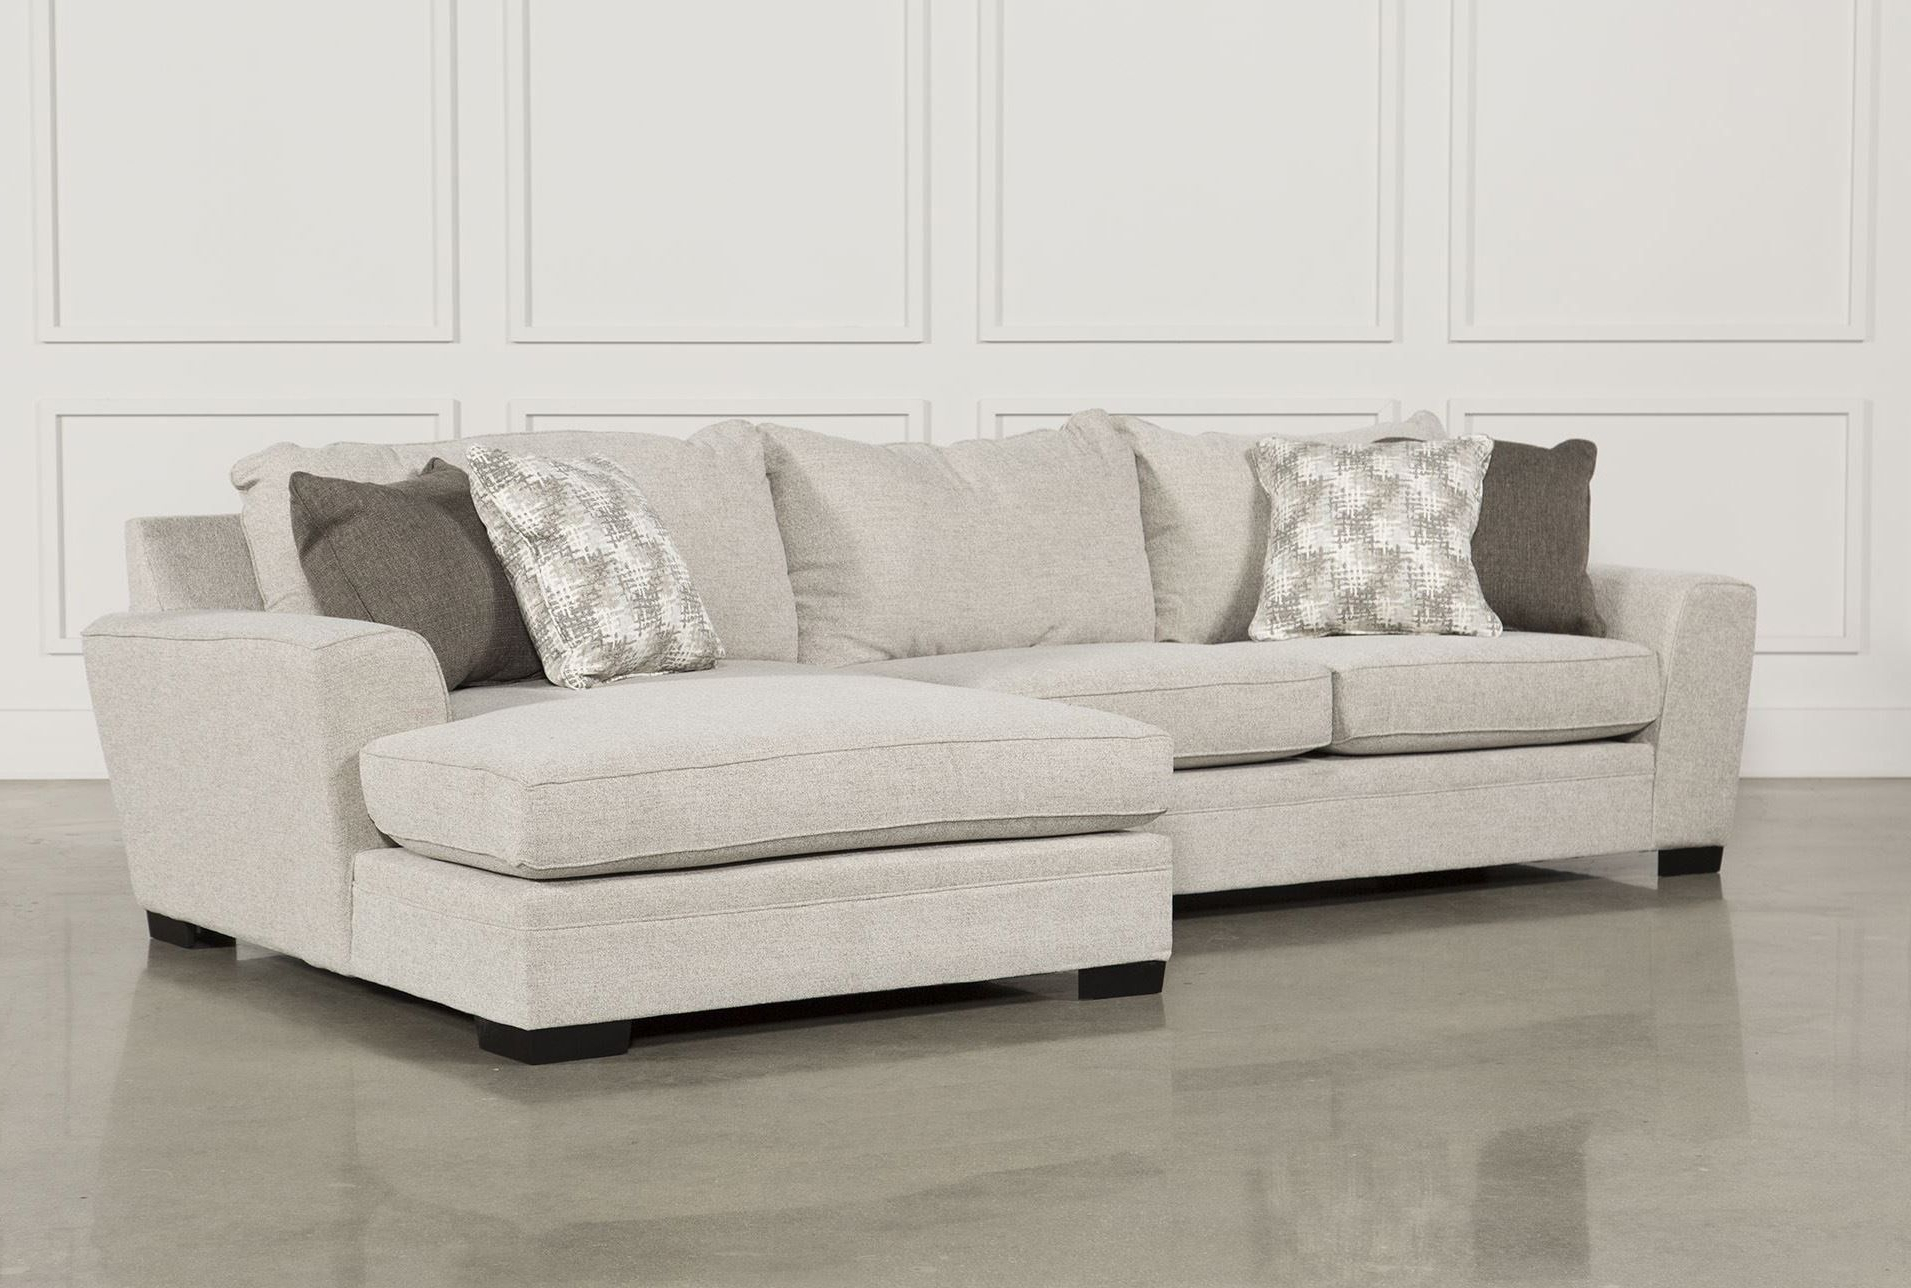 Malbry Point 3 Piece Sectionals With Raf Chaise For Recent Delano 2 Piece Sectional W/raf Oversized Chaise (View 7 of 20)